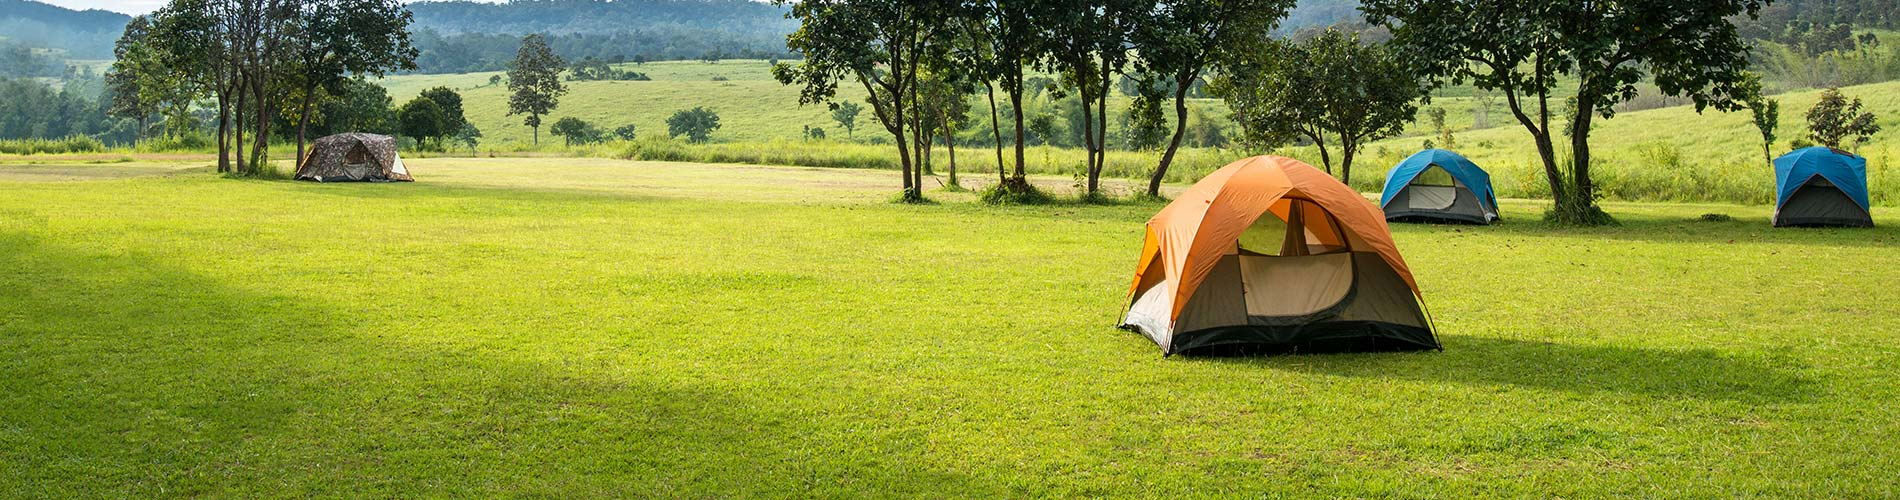 Camping bei Deep Roots Adventures